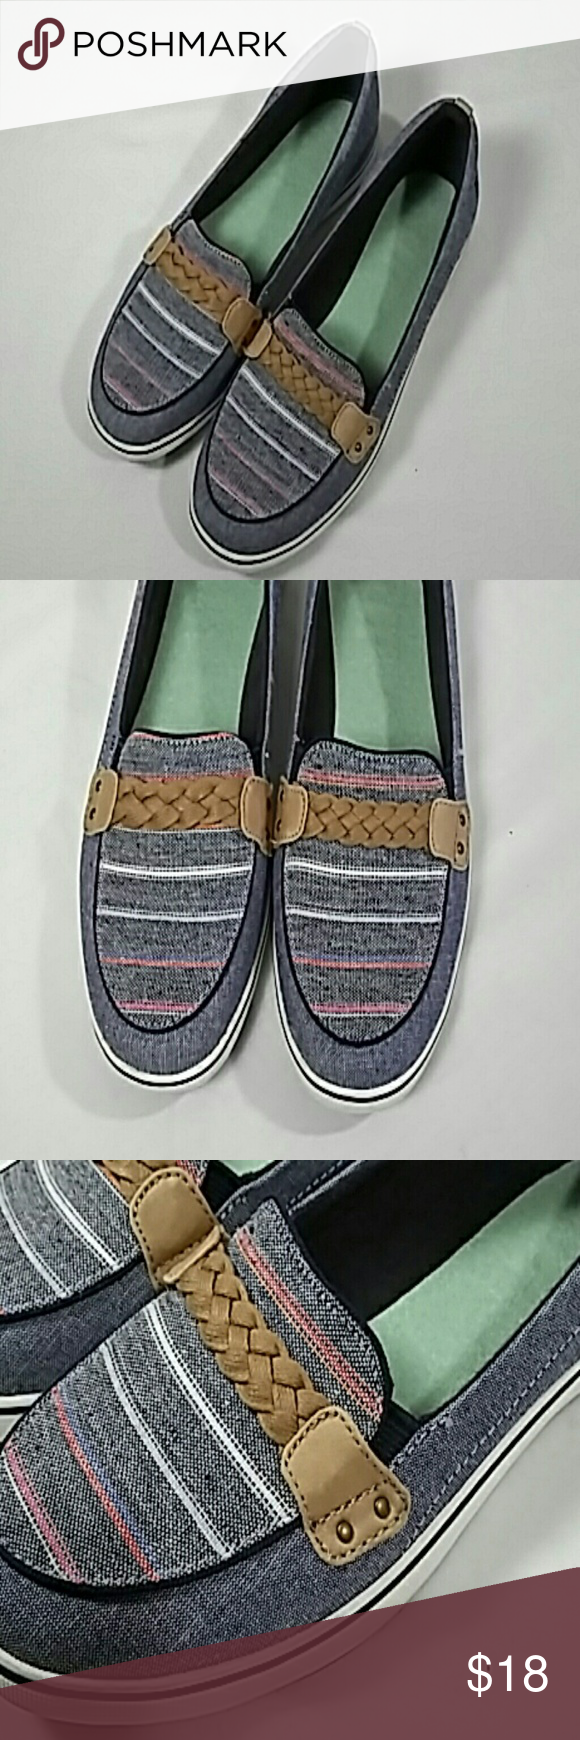 Grasshoppers darkest Brown w/Cream Bow Canvas Cushioned Insoles Shoes Size 6M